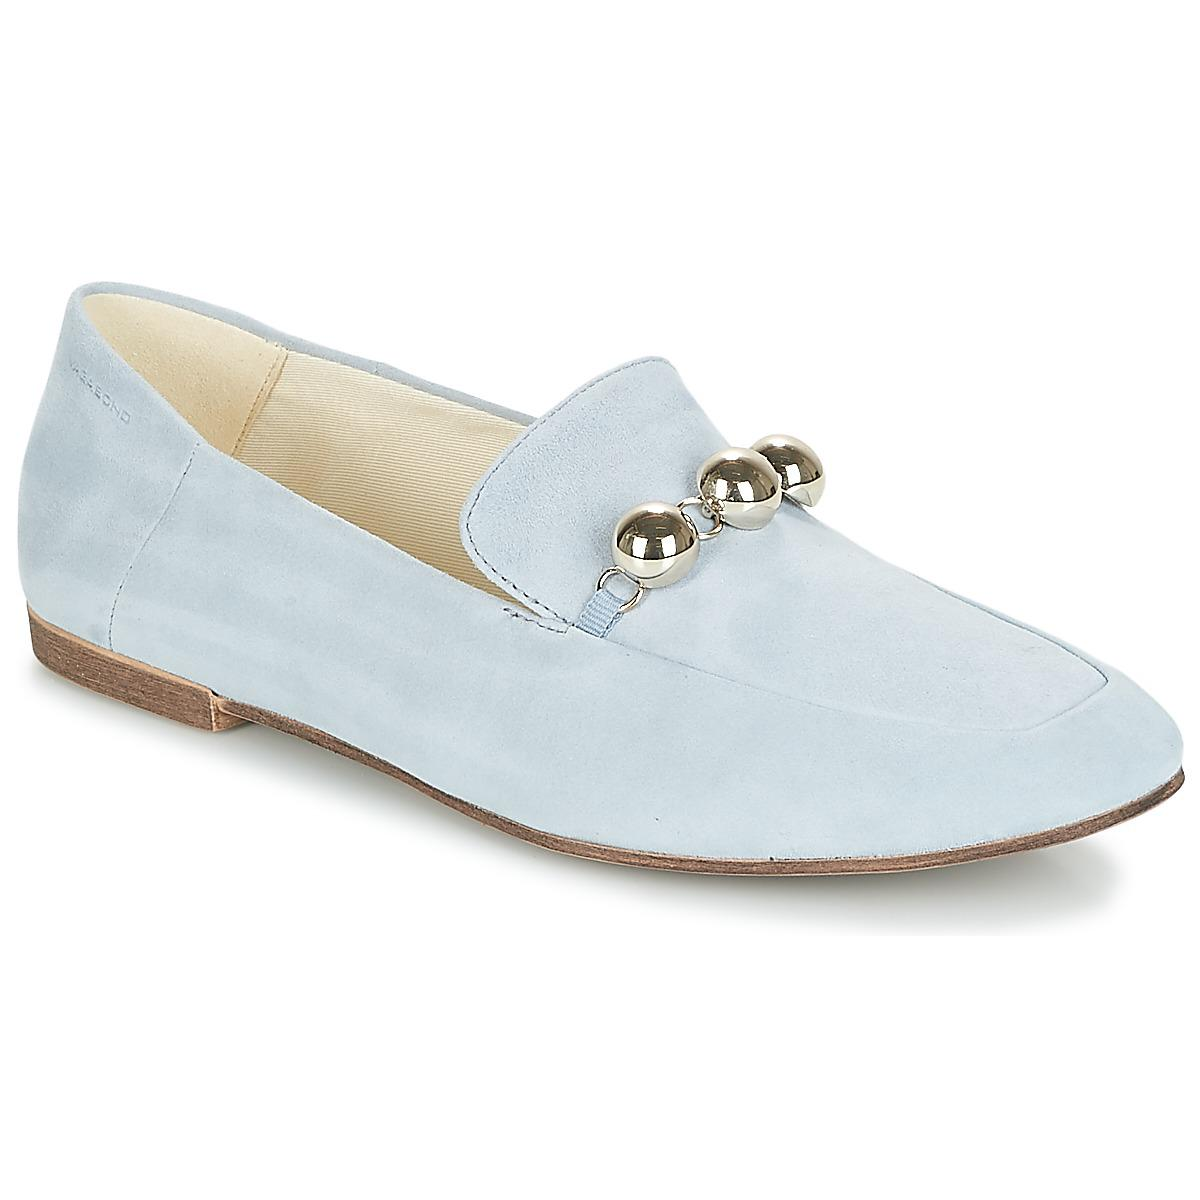 68ce7e7a5a1 Vagabond Ayden Women s Loafers   Casual Shoes In Grey in Gray - Lyst